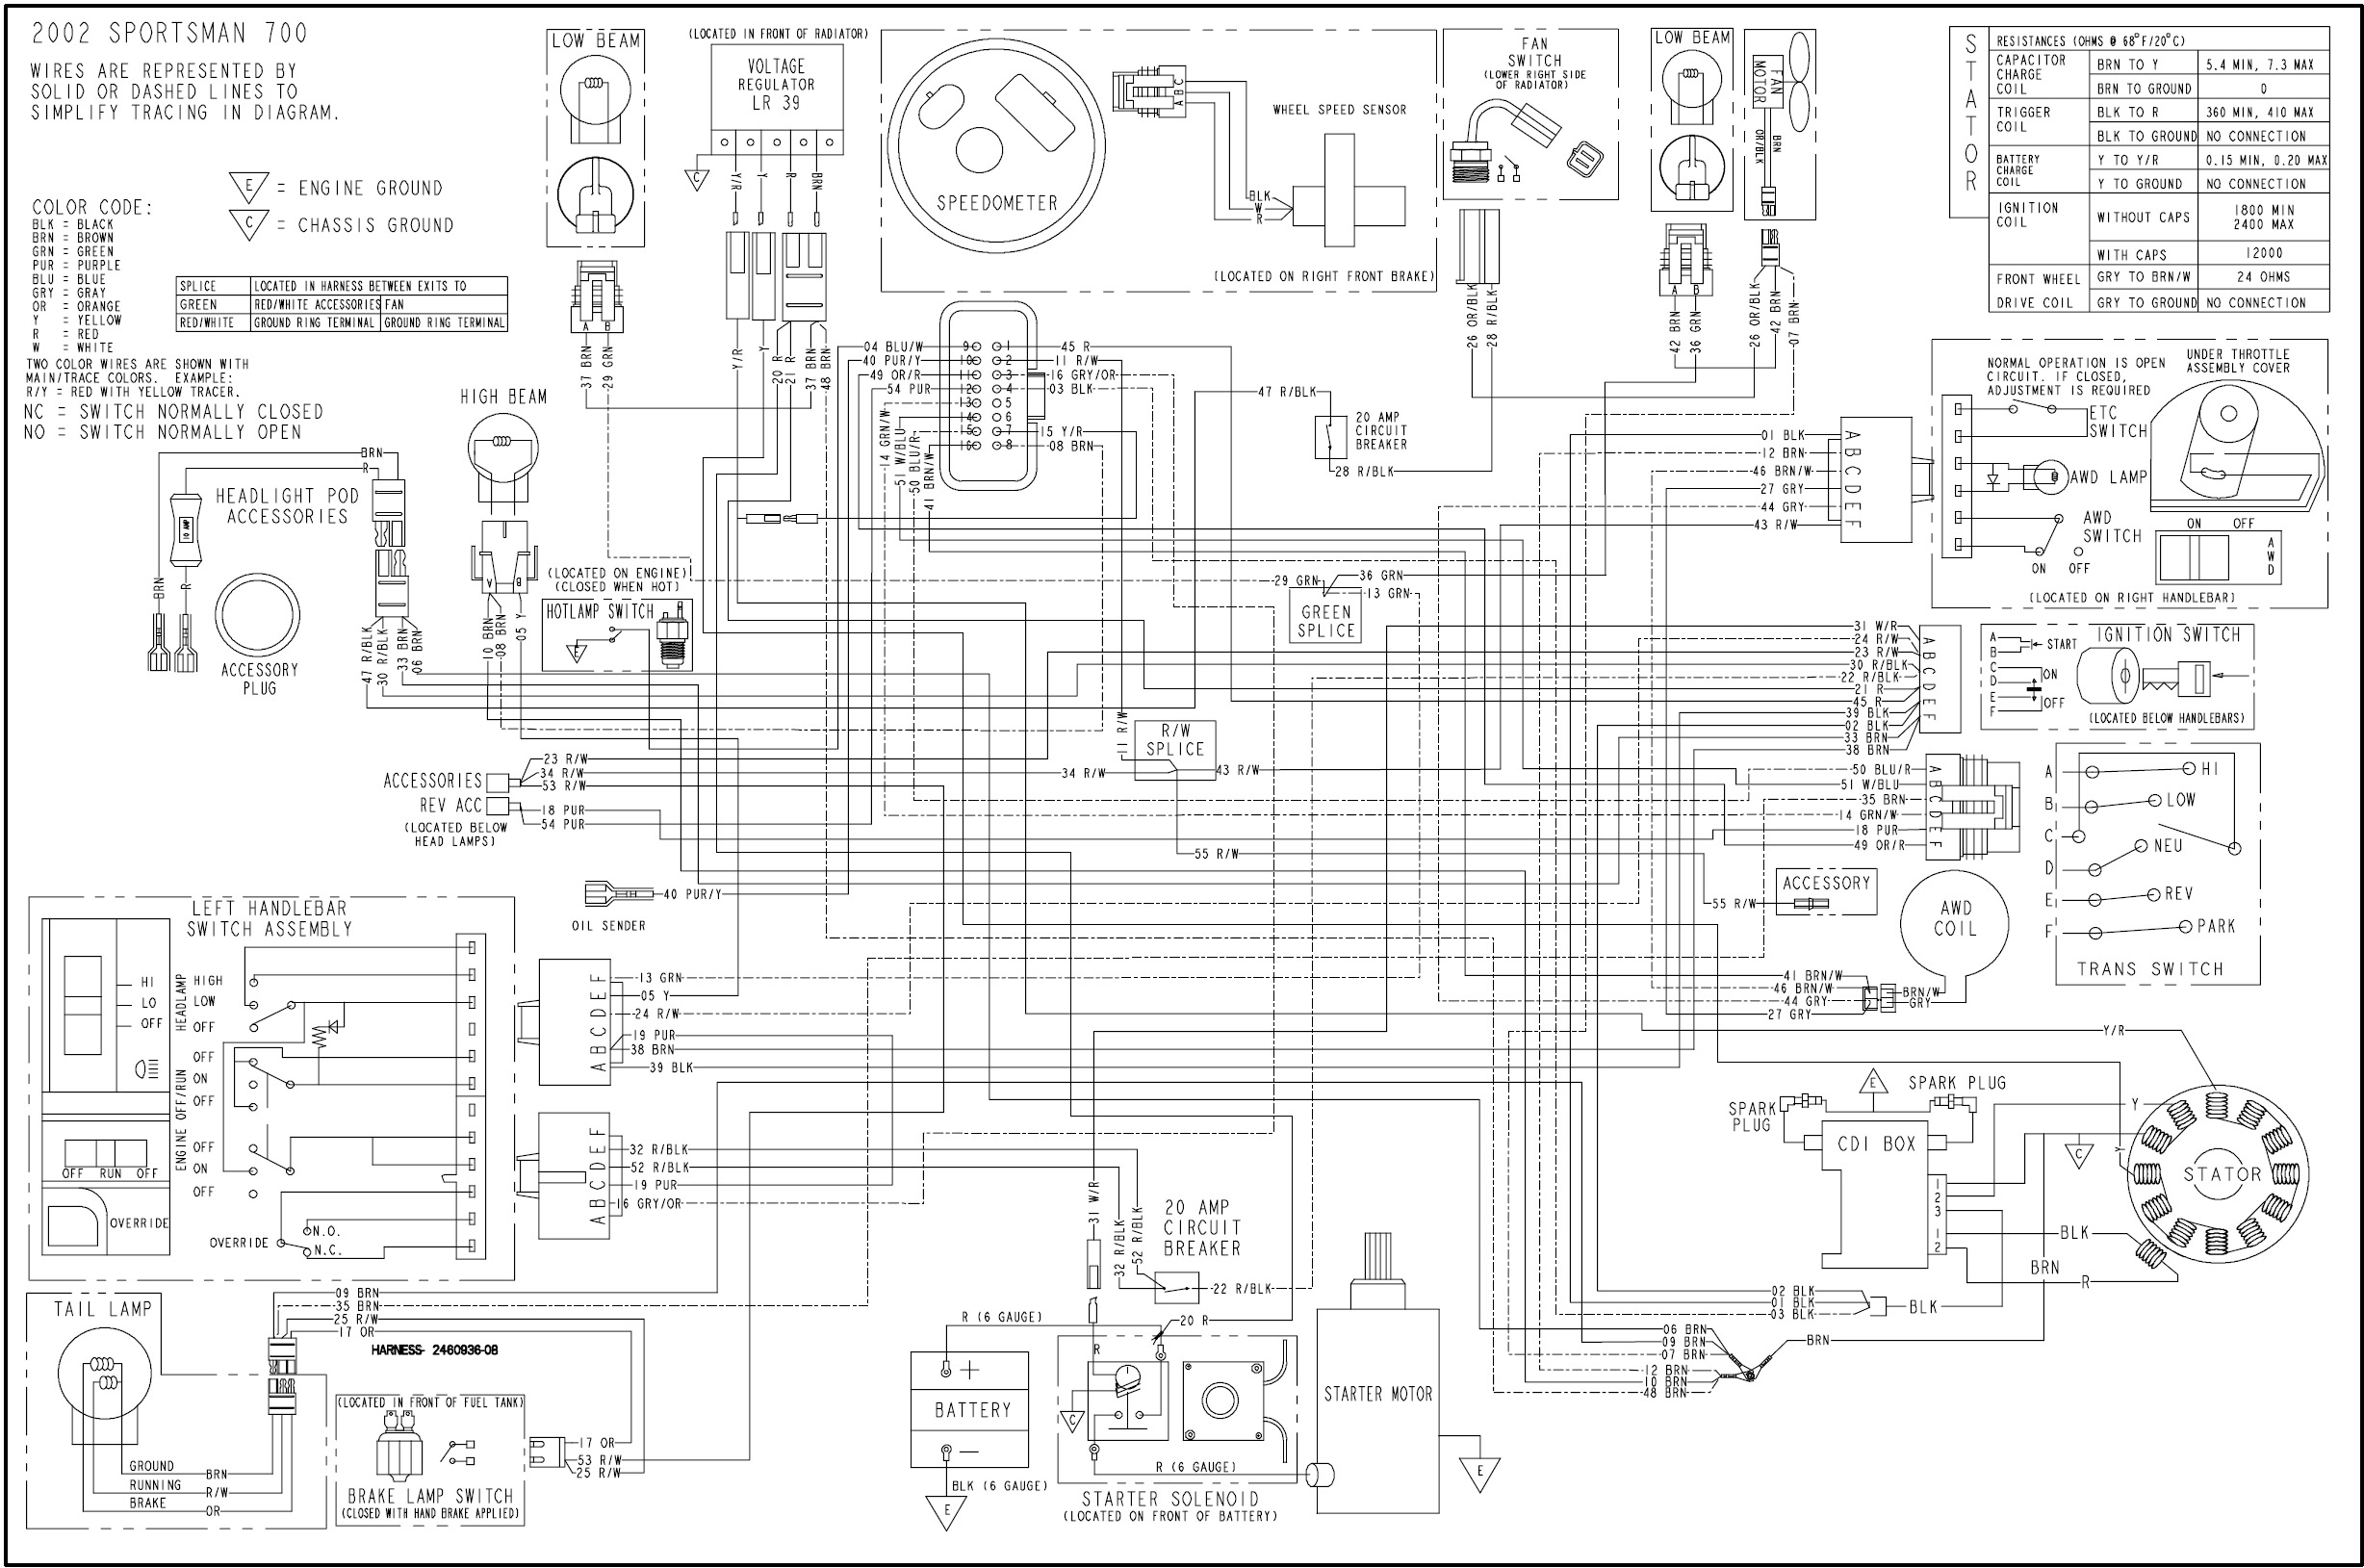 75754d1491234477 2001 sportsman 700 twin no start 2002_polaris_sportsman_700_wiring_diagram 2001 sportsman 700 twin no start polaris atv forum 2007 polaris sportsman 700 wiring diagram at bakdesigns.co